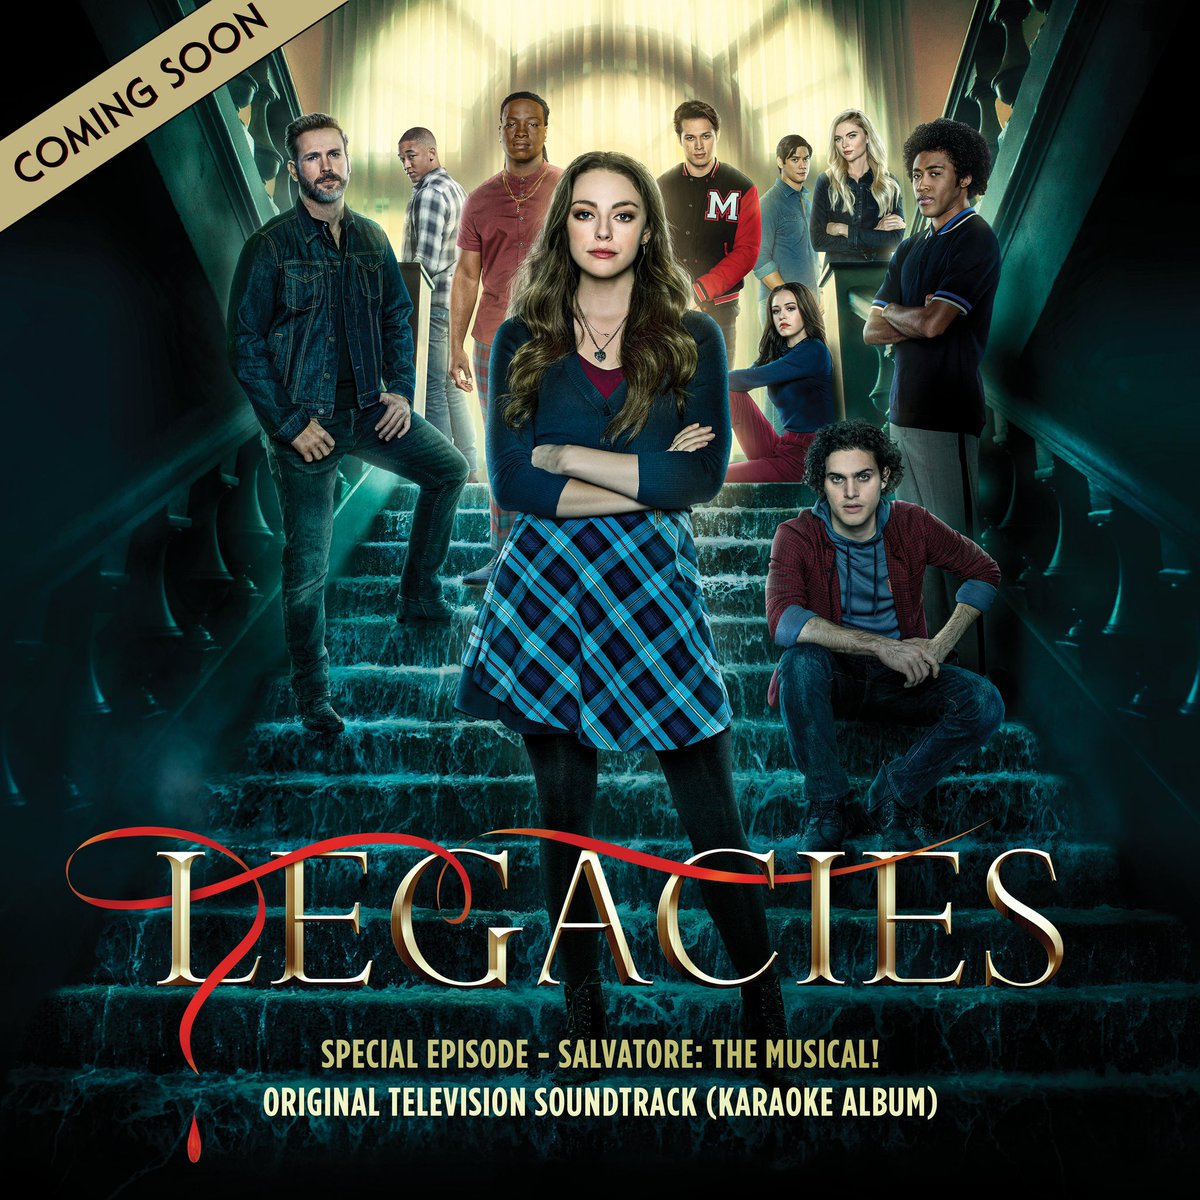 Oh hey, #Legacies fans who loved Salvatore: The Musical! Look what we're cooking up for you! We've loved seeing the videos you've made of the songs — hopefully this will make it easier for you.